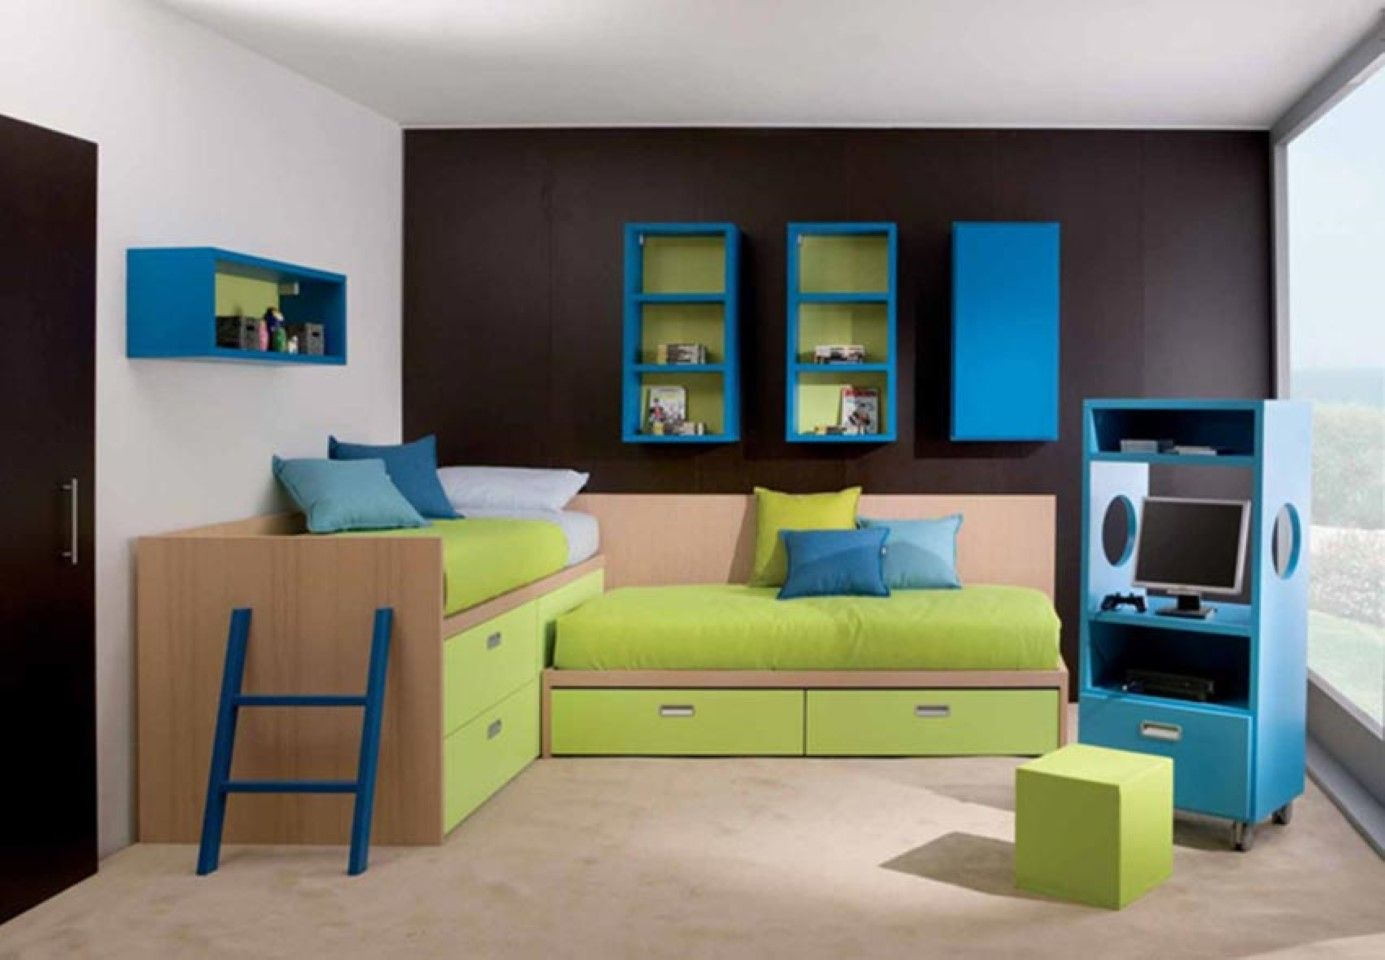 Black And White Wall Paint Idea Feat L Shaped Bed With Storage Underneath  In Simple Kids Room Idea Plus Portable Computer Desk